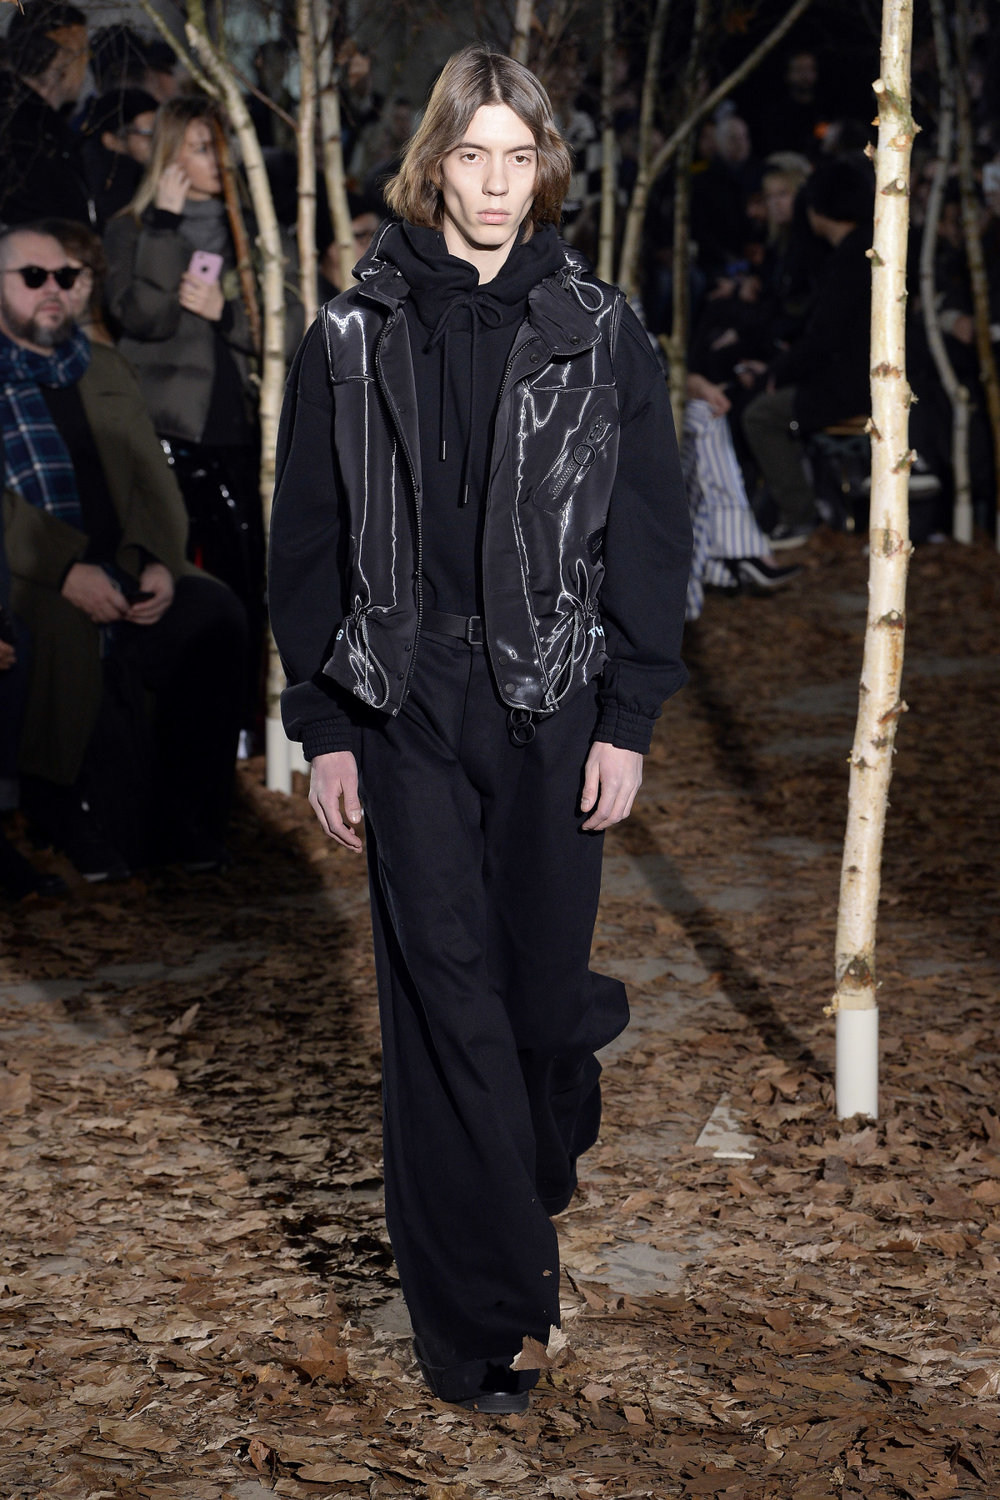 off_white_look_27_2017_aw_mens.jpeg